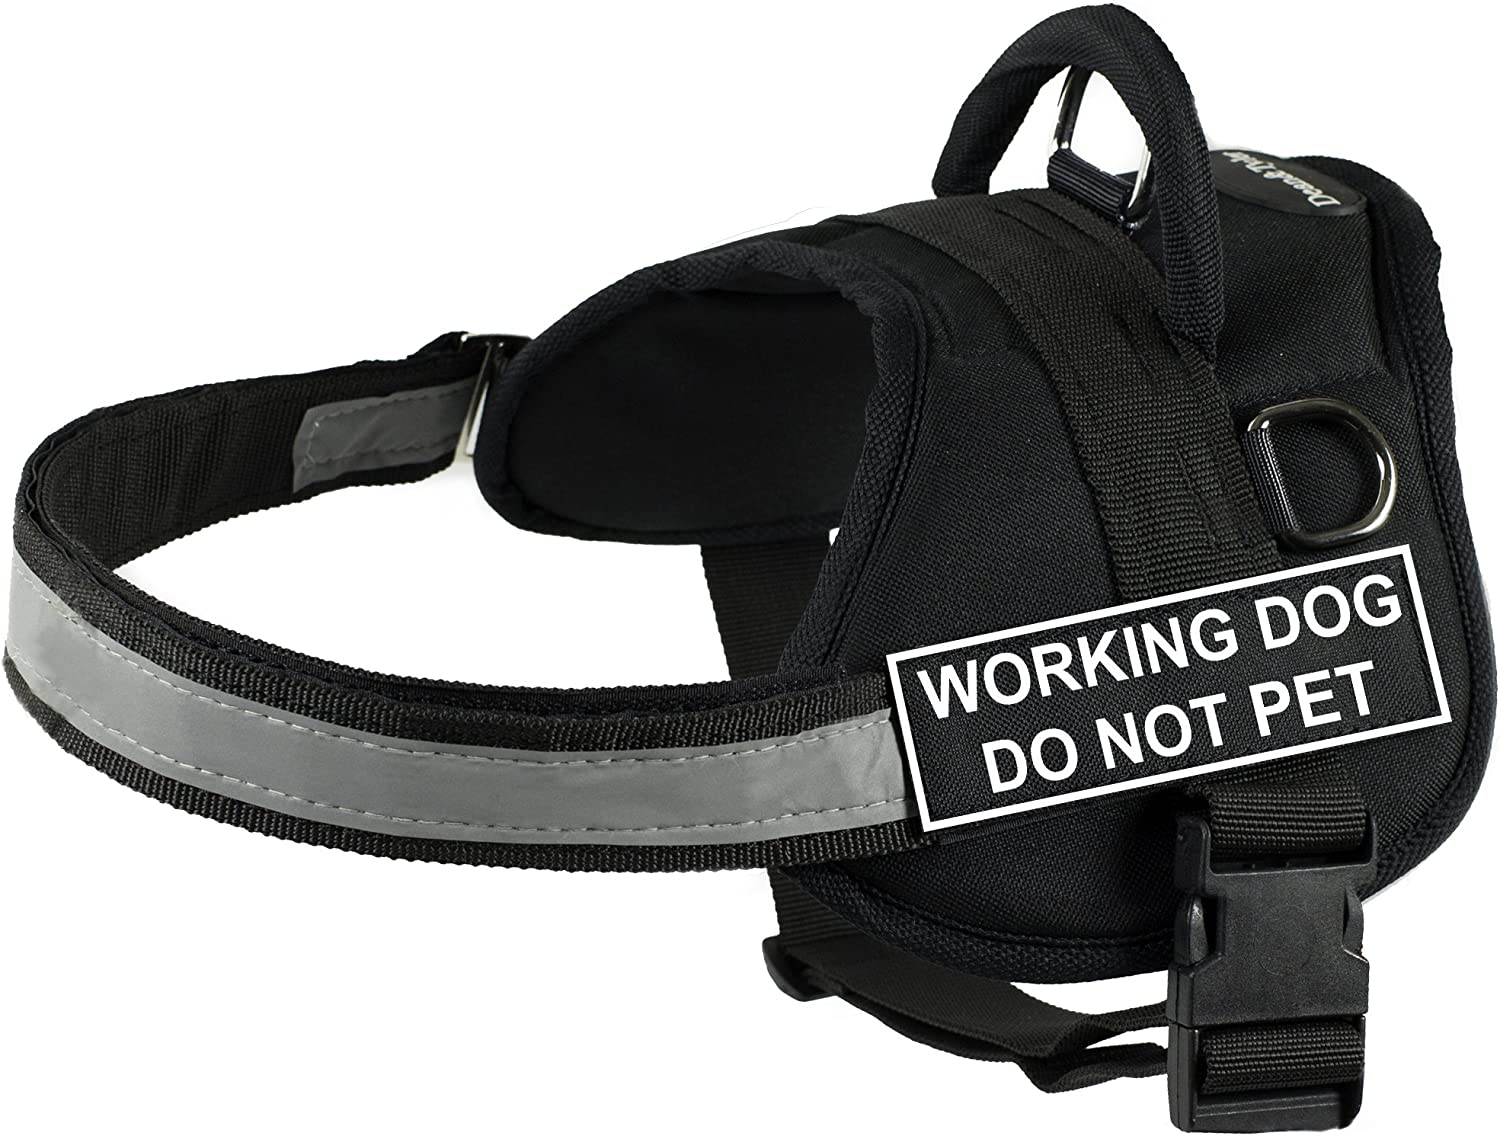 DT Fashion Works Harness Working Dog Do Not F Black Large - White Pet New Shipping Free Shipping